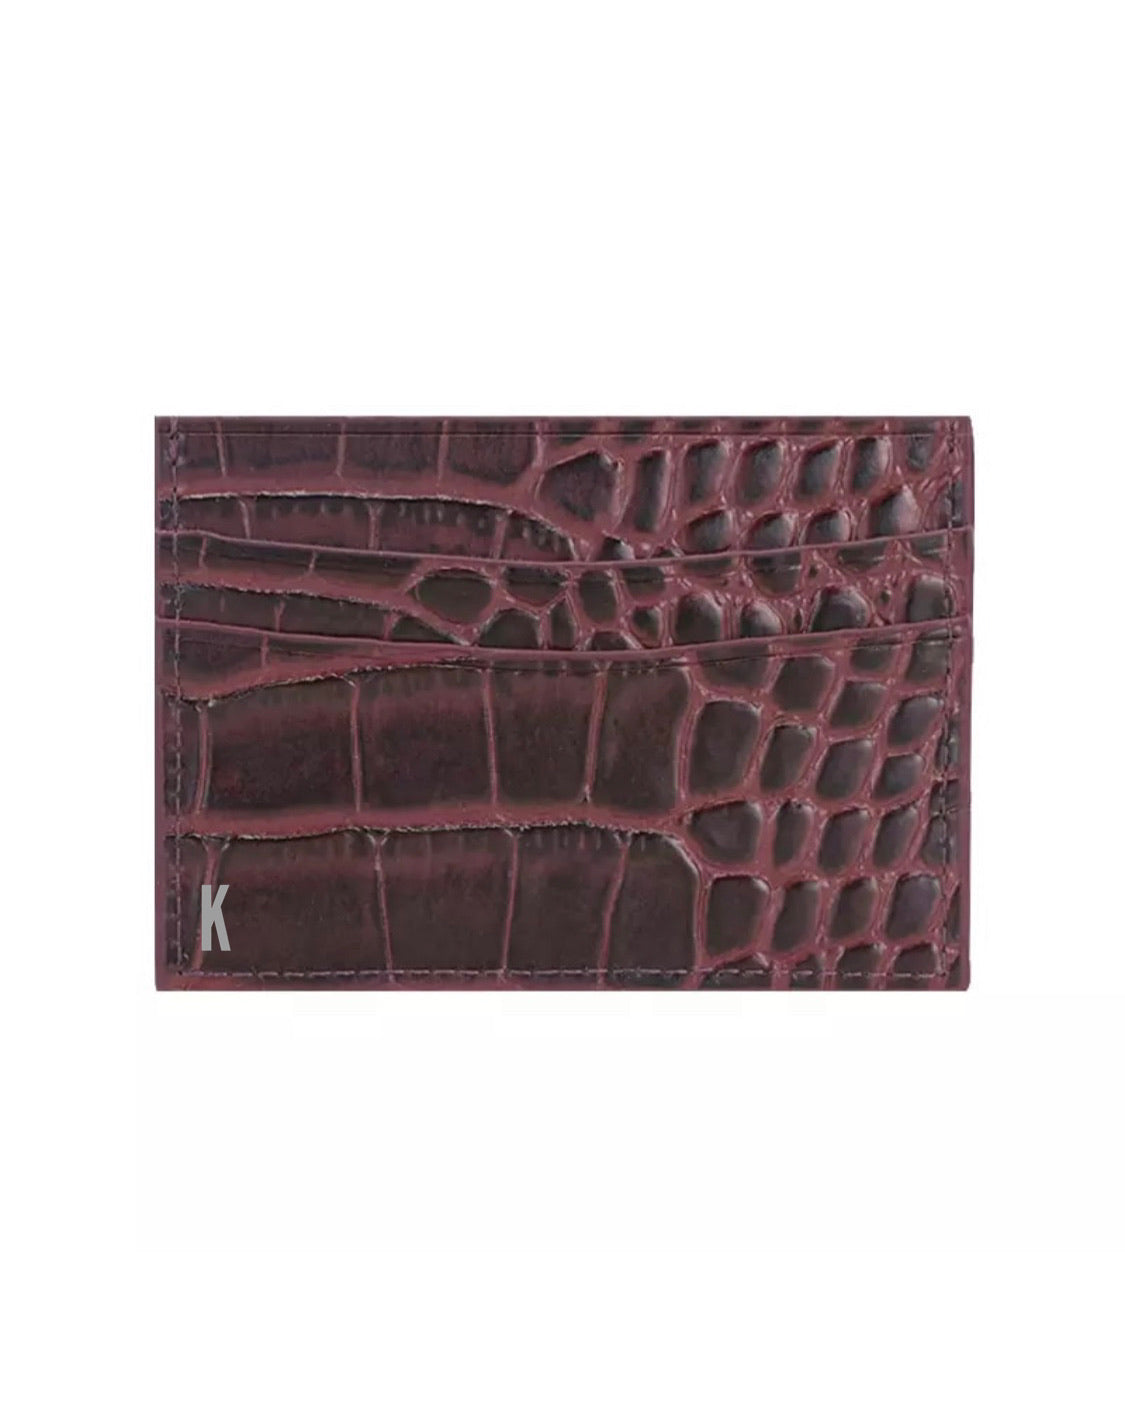 (Made-to-order) Deep Bordeaux Croc  Embossed Vegan Leather Card Case